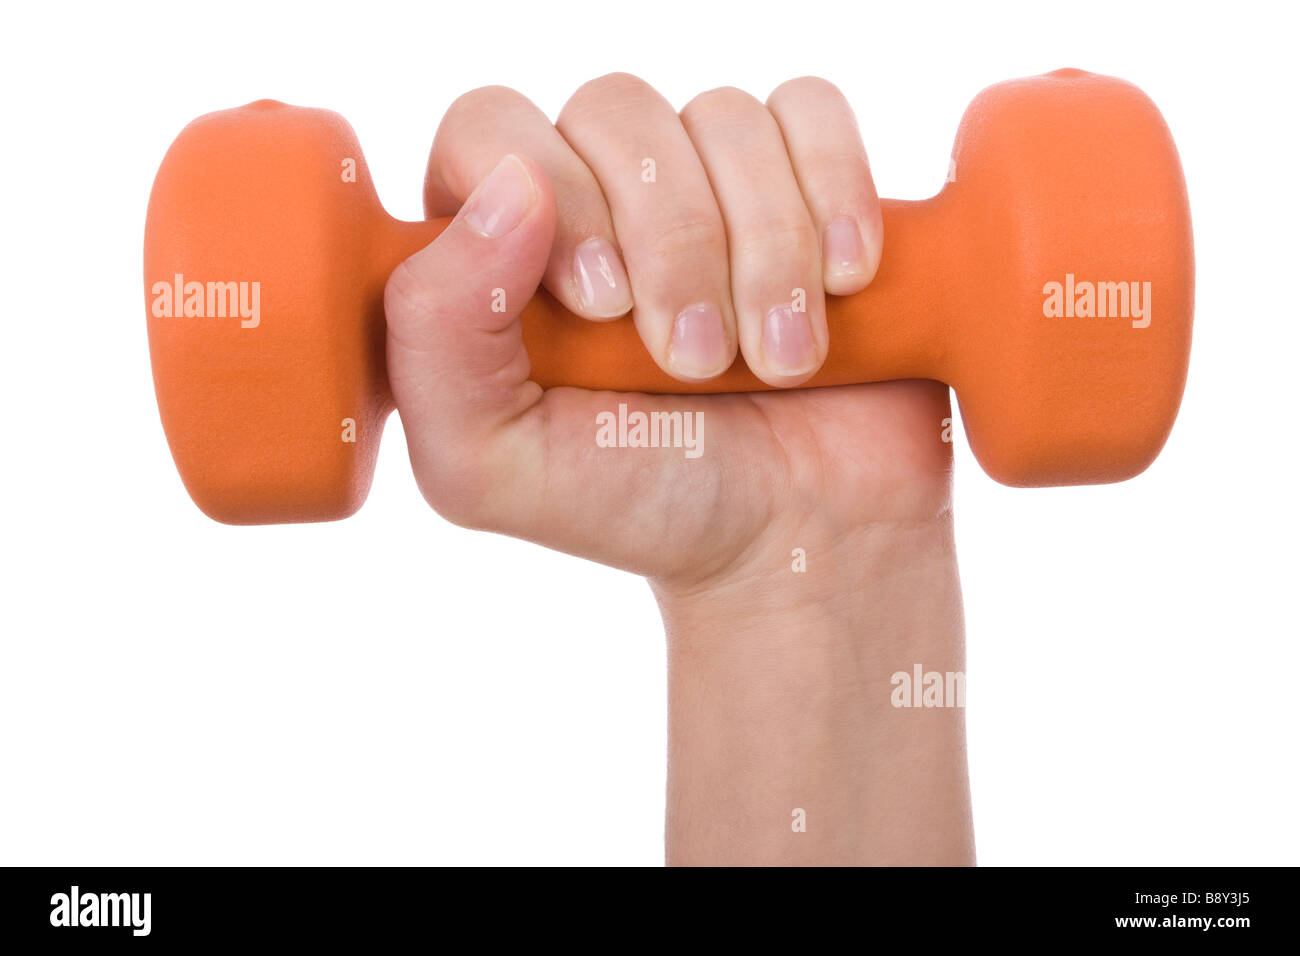 Female hand holding a dumbbell isolated on white - Stock Image